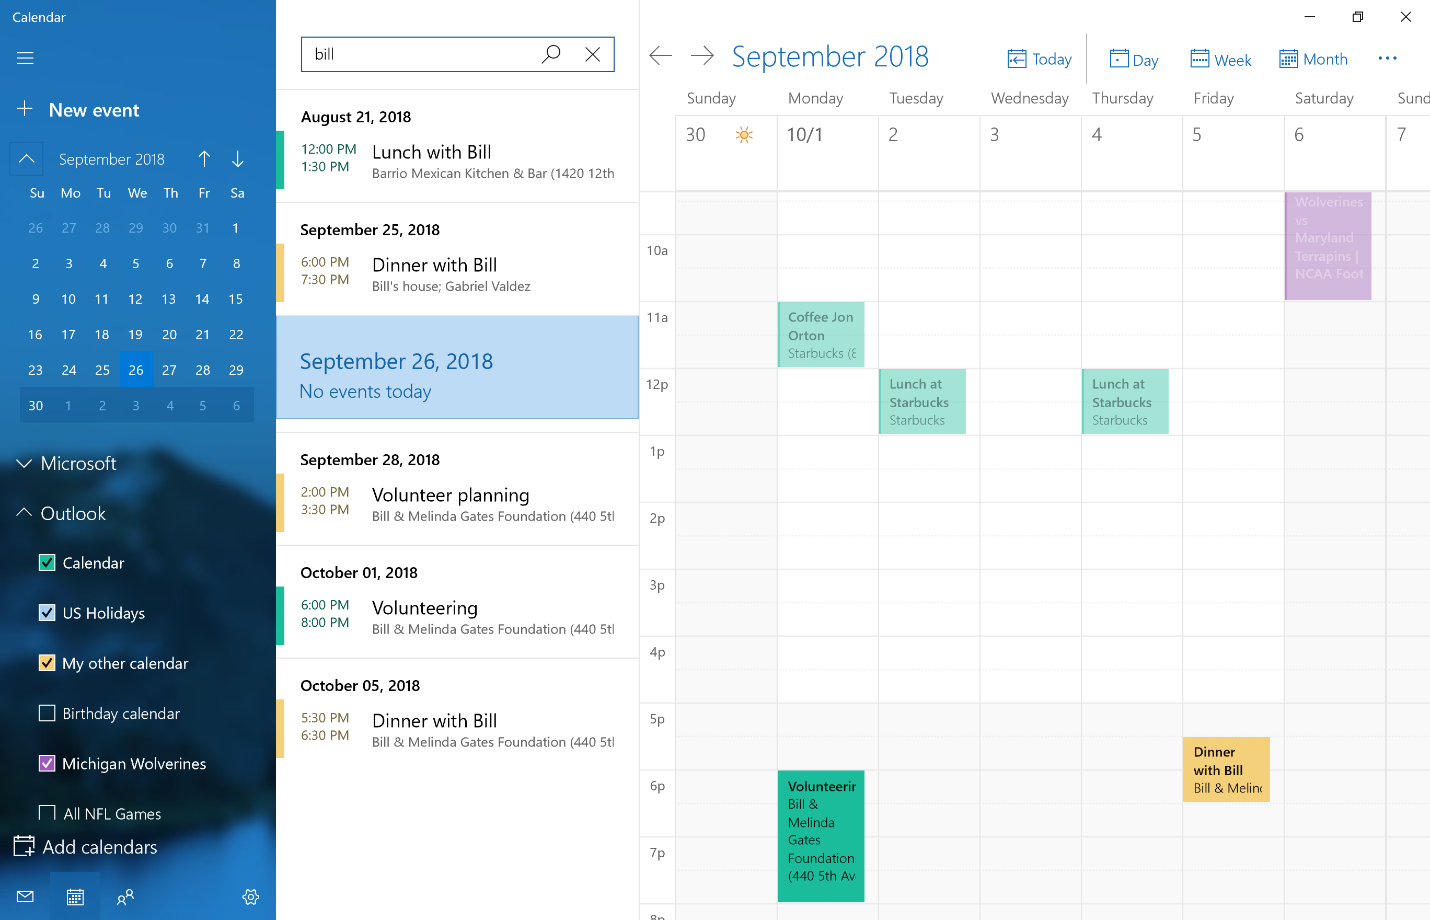 Find Out Whats New In Windows And Office October Aug Capacity To Draw Schematics Title Bar Youll Be Events That Match Your Search Will Clearly Visible On Calendar While Those Dont Dimmed So You Can What Need Quickly